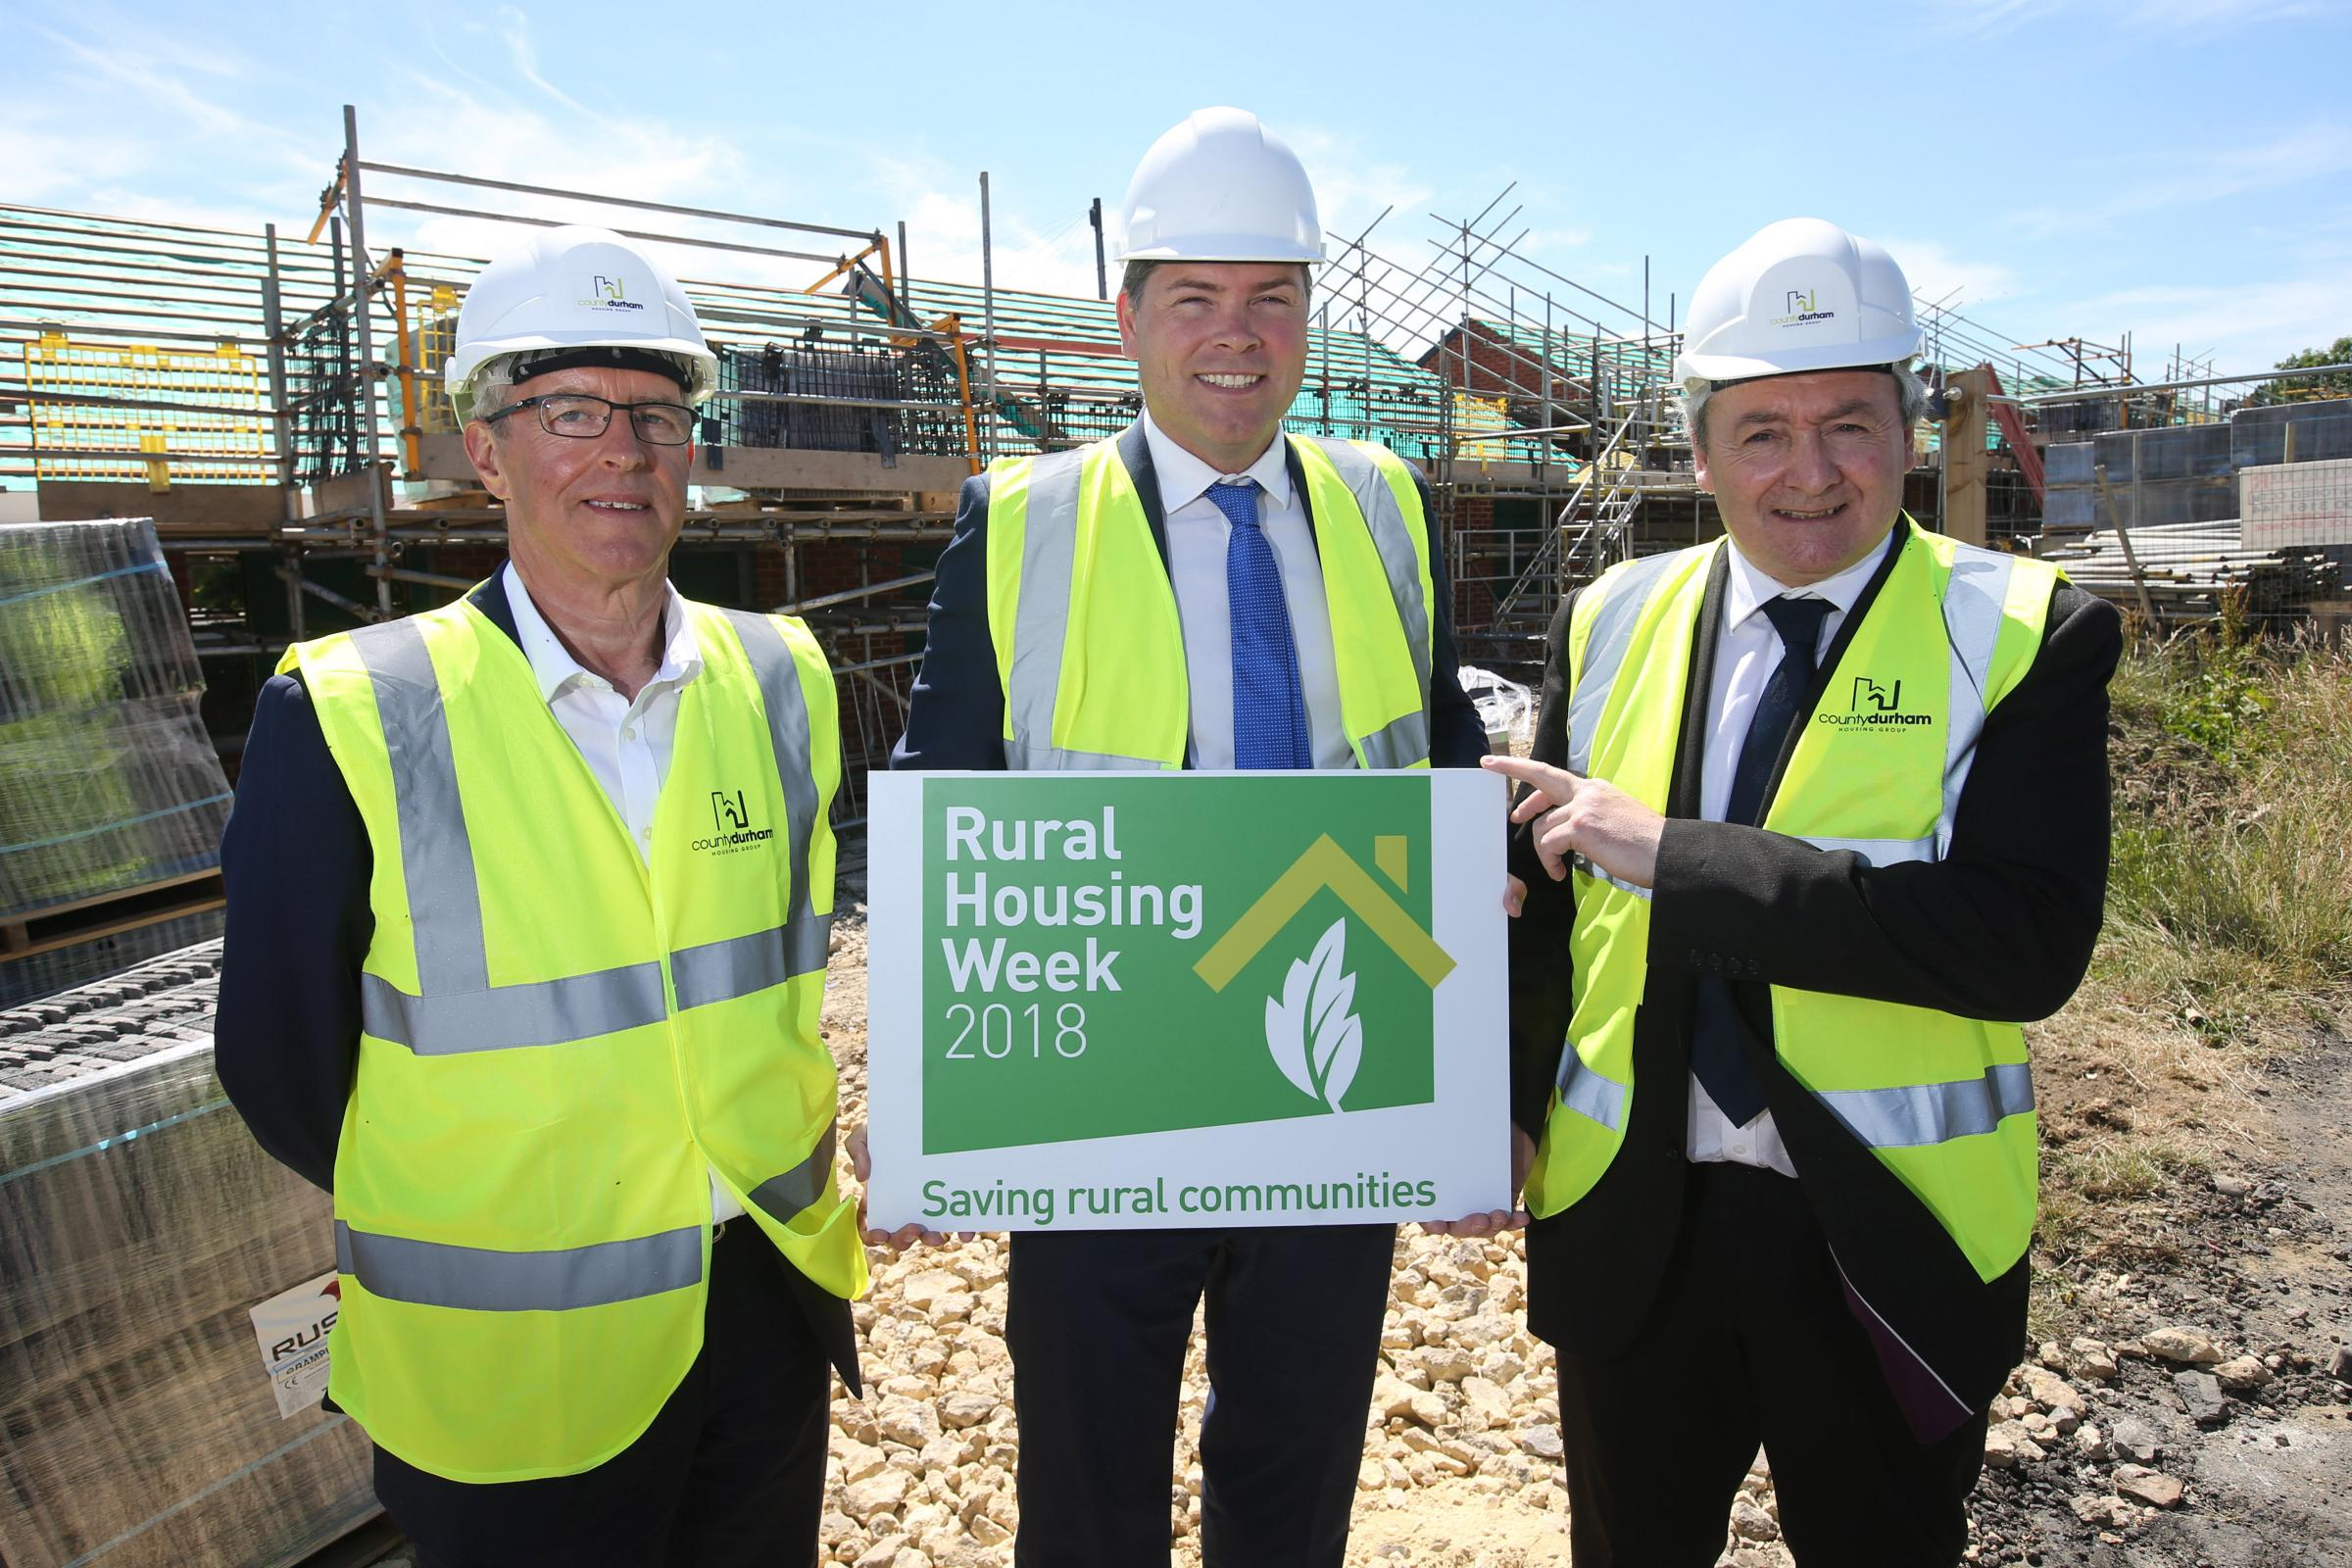 HOMES: Bill Fullen, Andrew Rennie and Councillor Kevin Shaw on the site of the new homes at Crook, County Durham